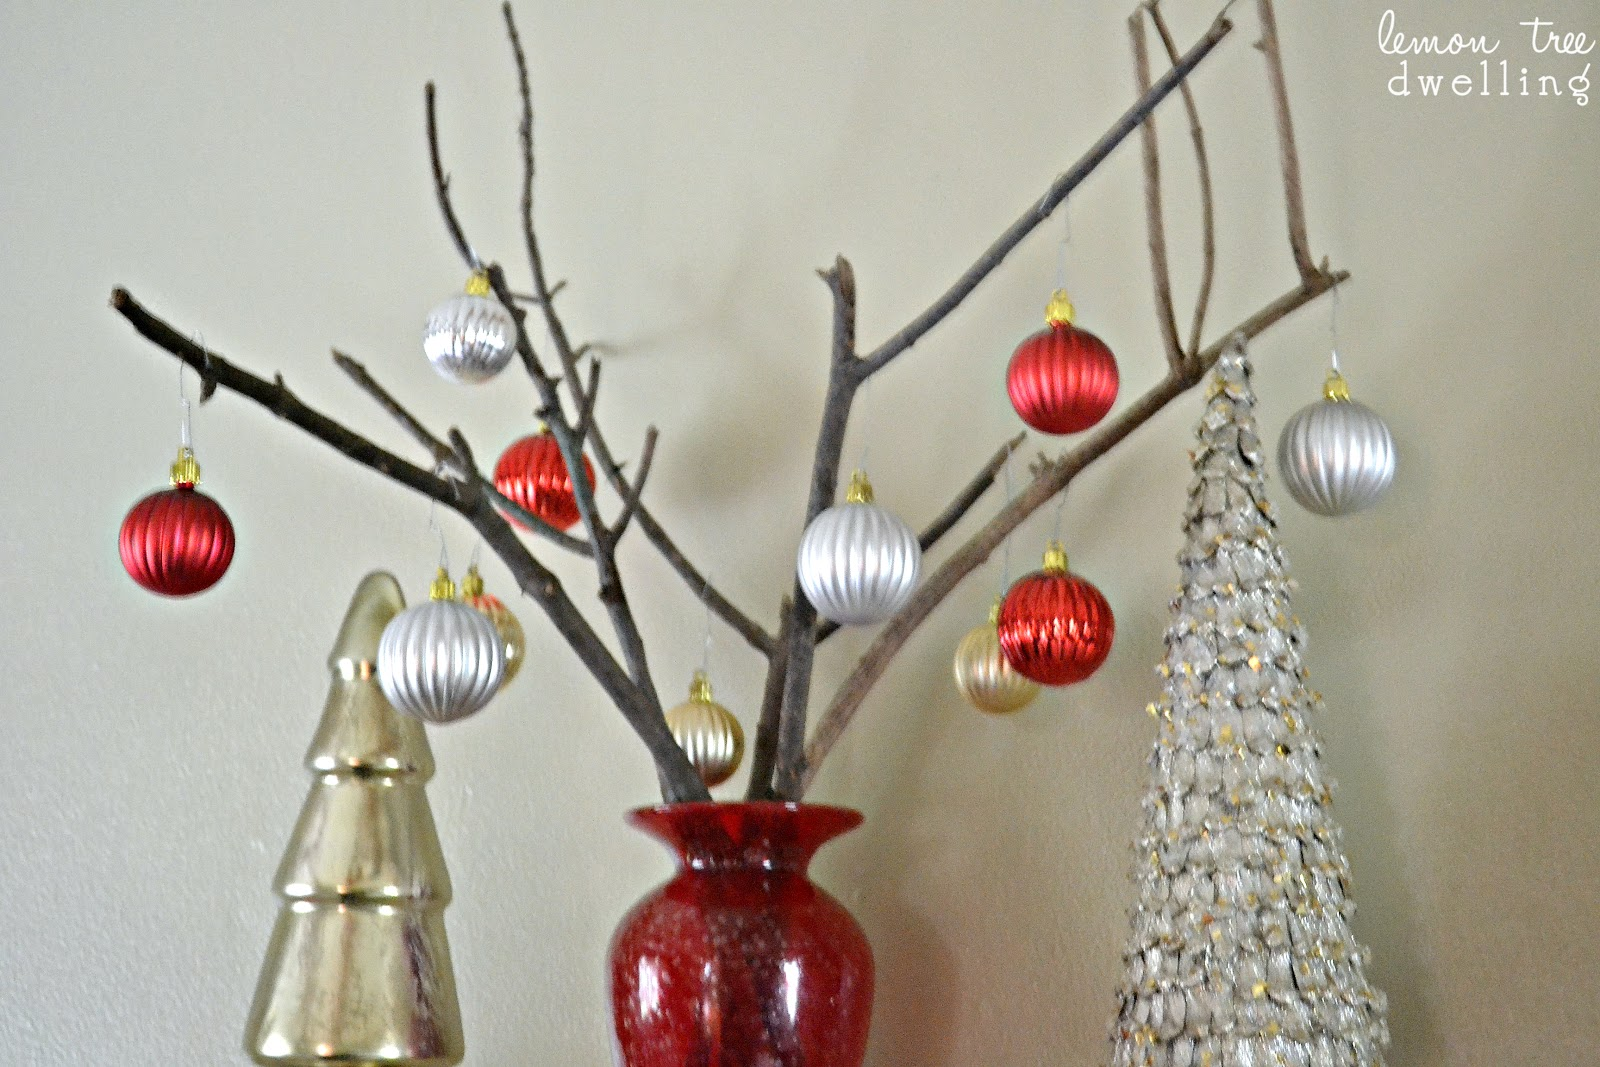 Bare Branch Christmas Tree | Lemon Tree Dwelling